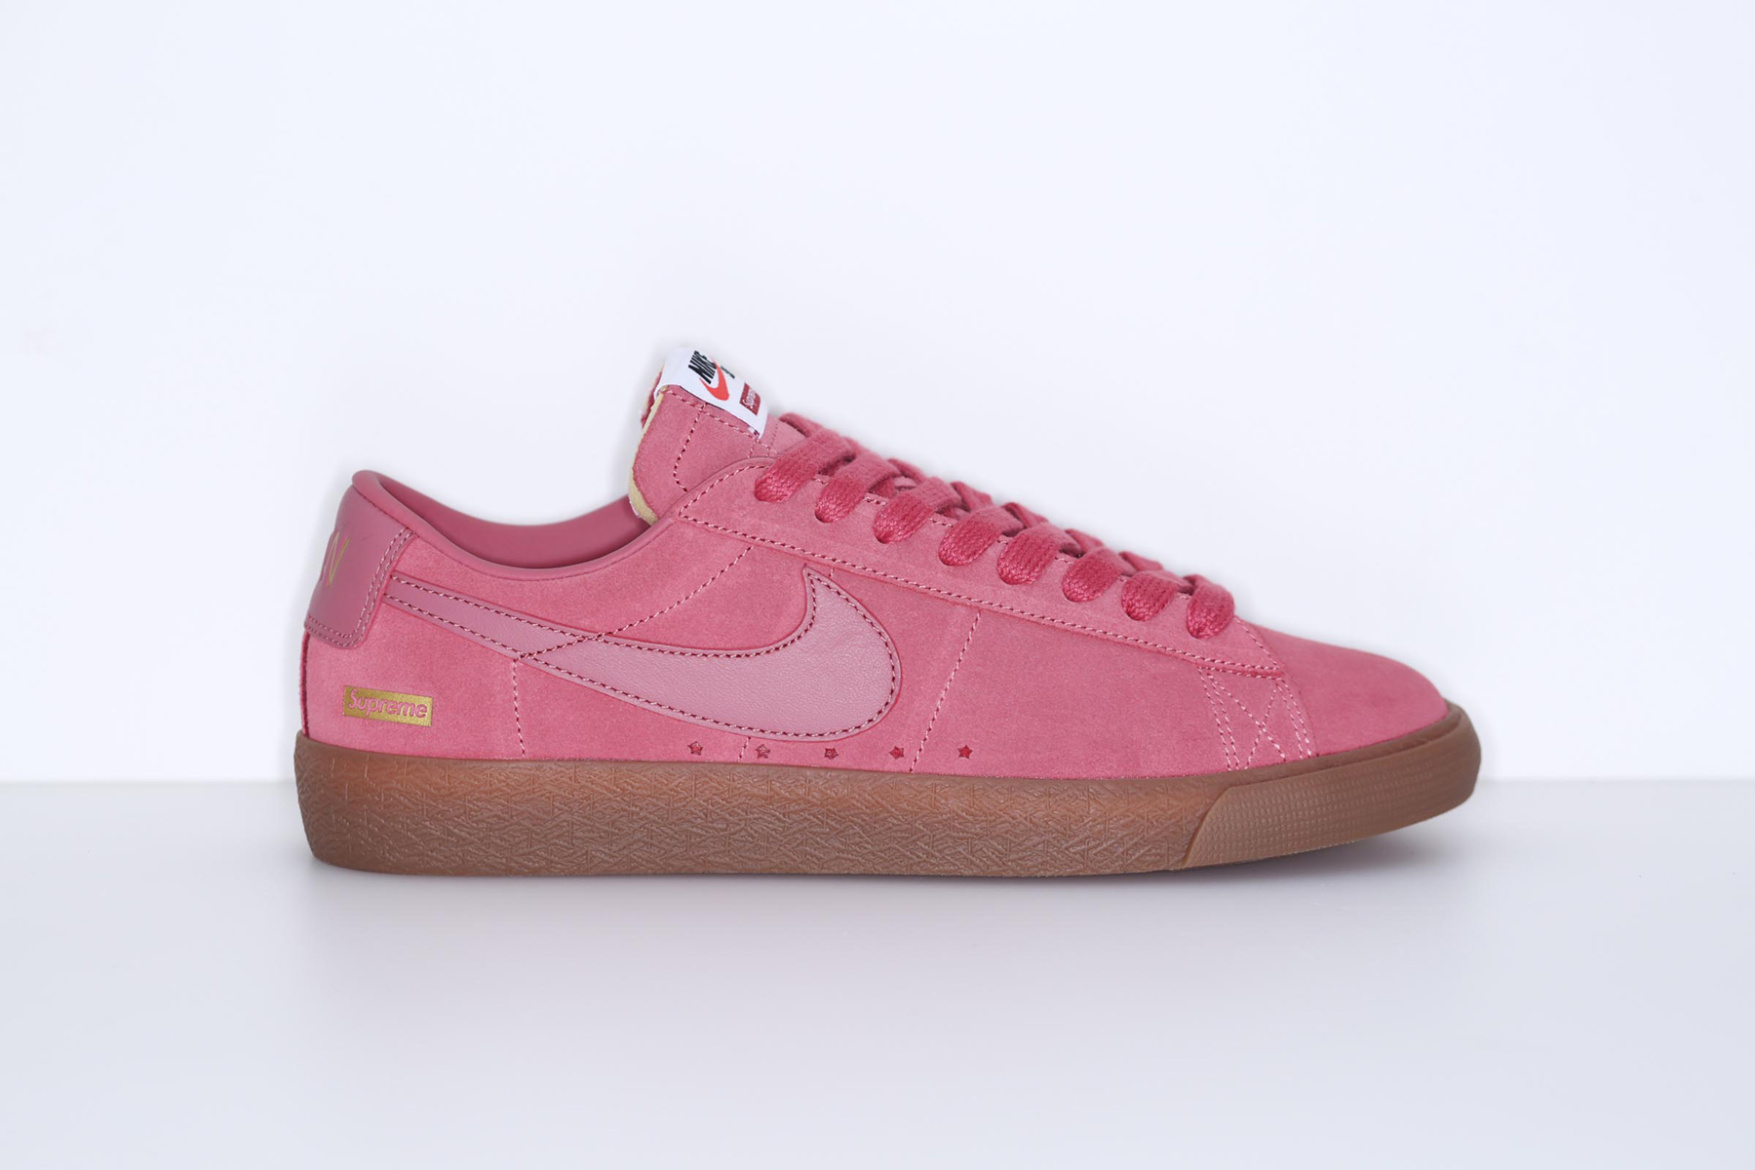 supreme-nike-sb-blazer-low-pink-teal-brown-2